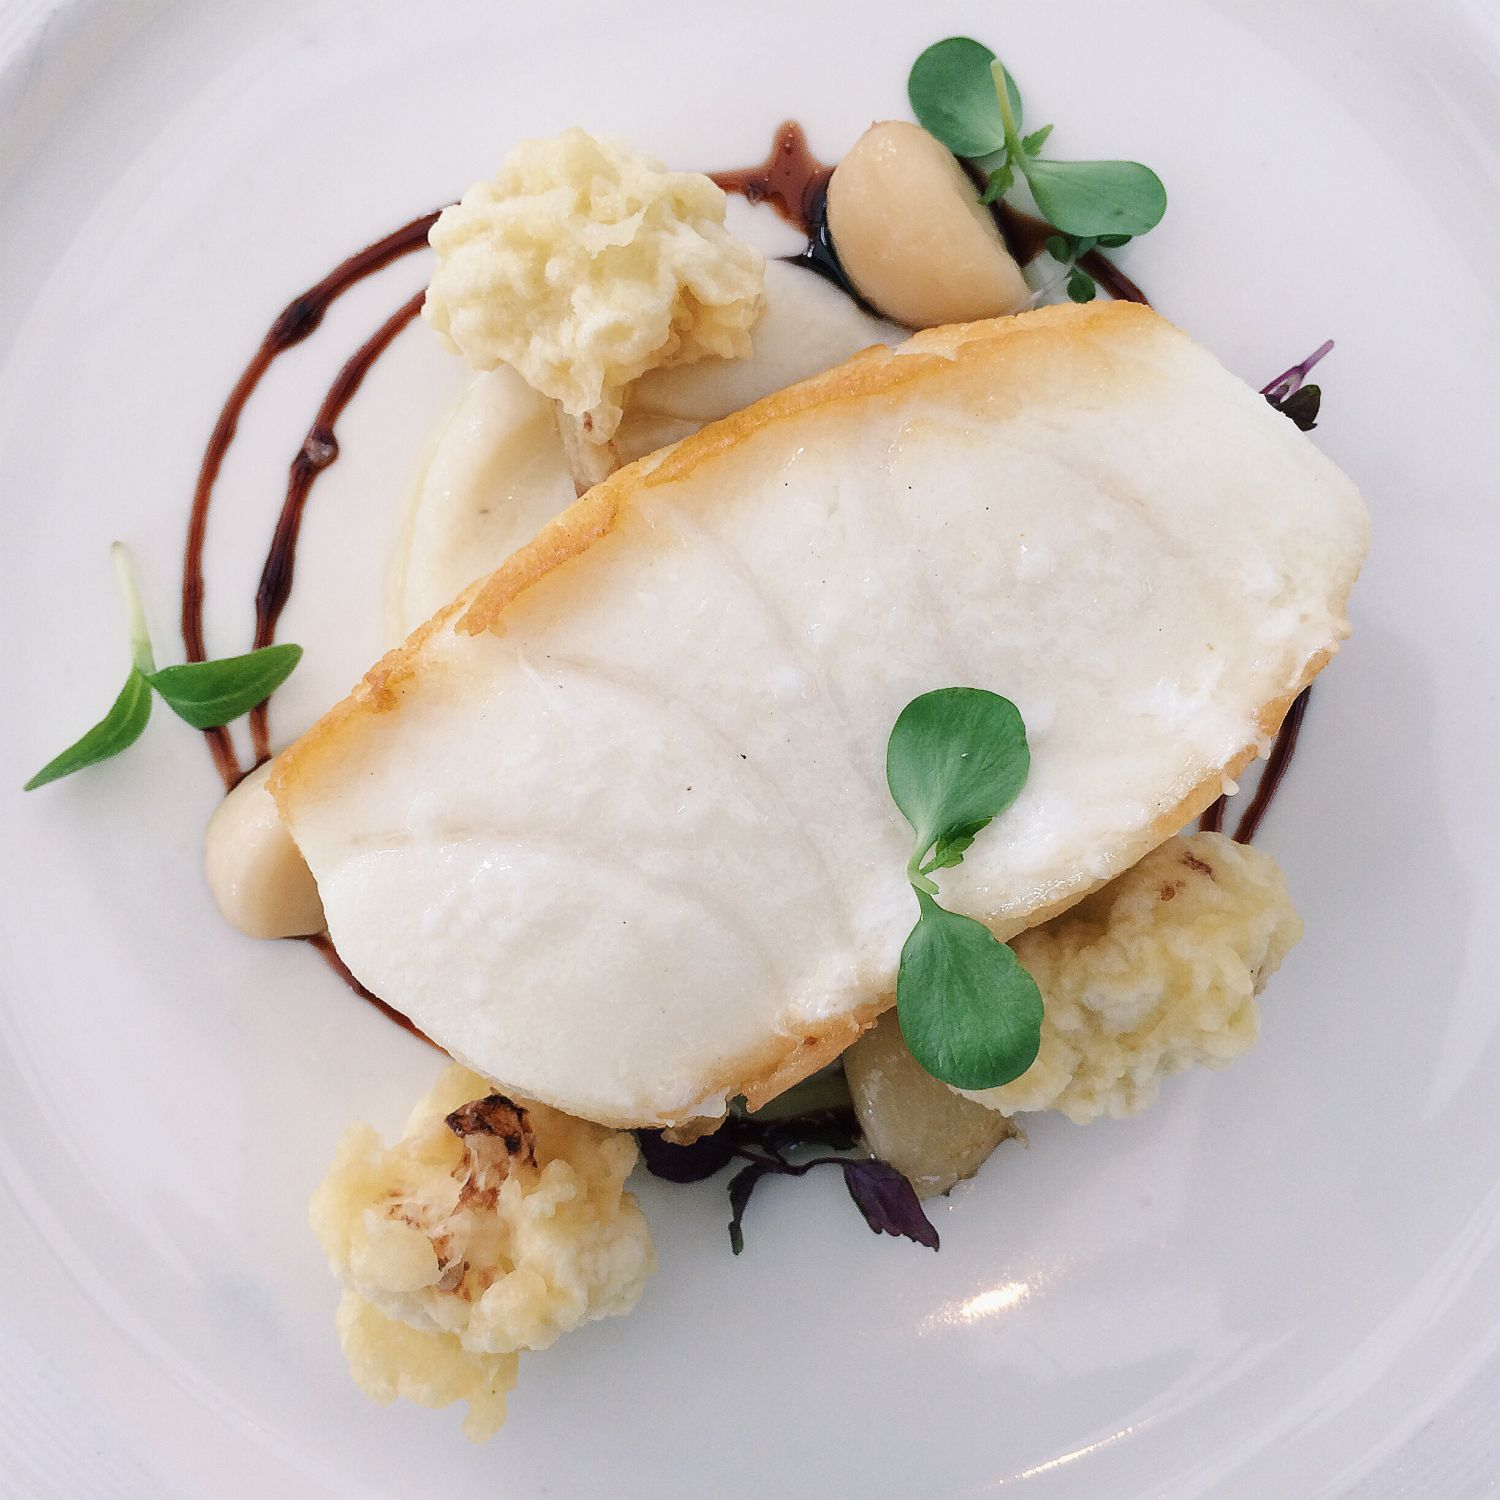 Pan-fried Cod Fish - Pool Grill